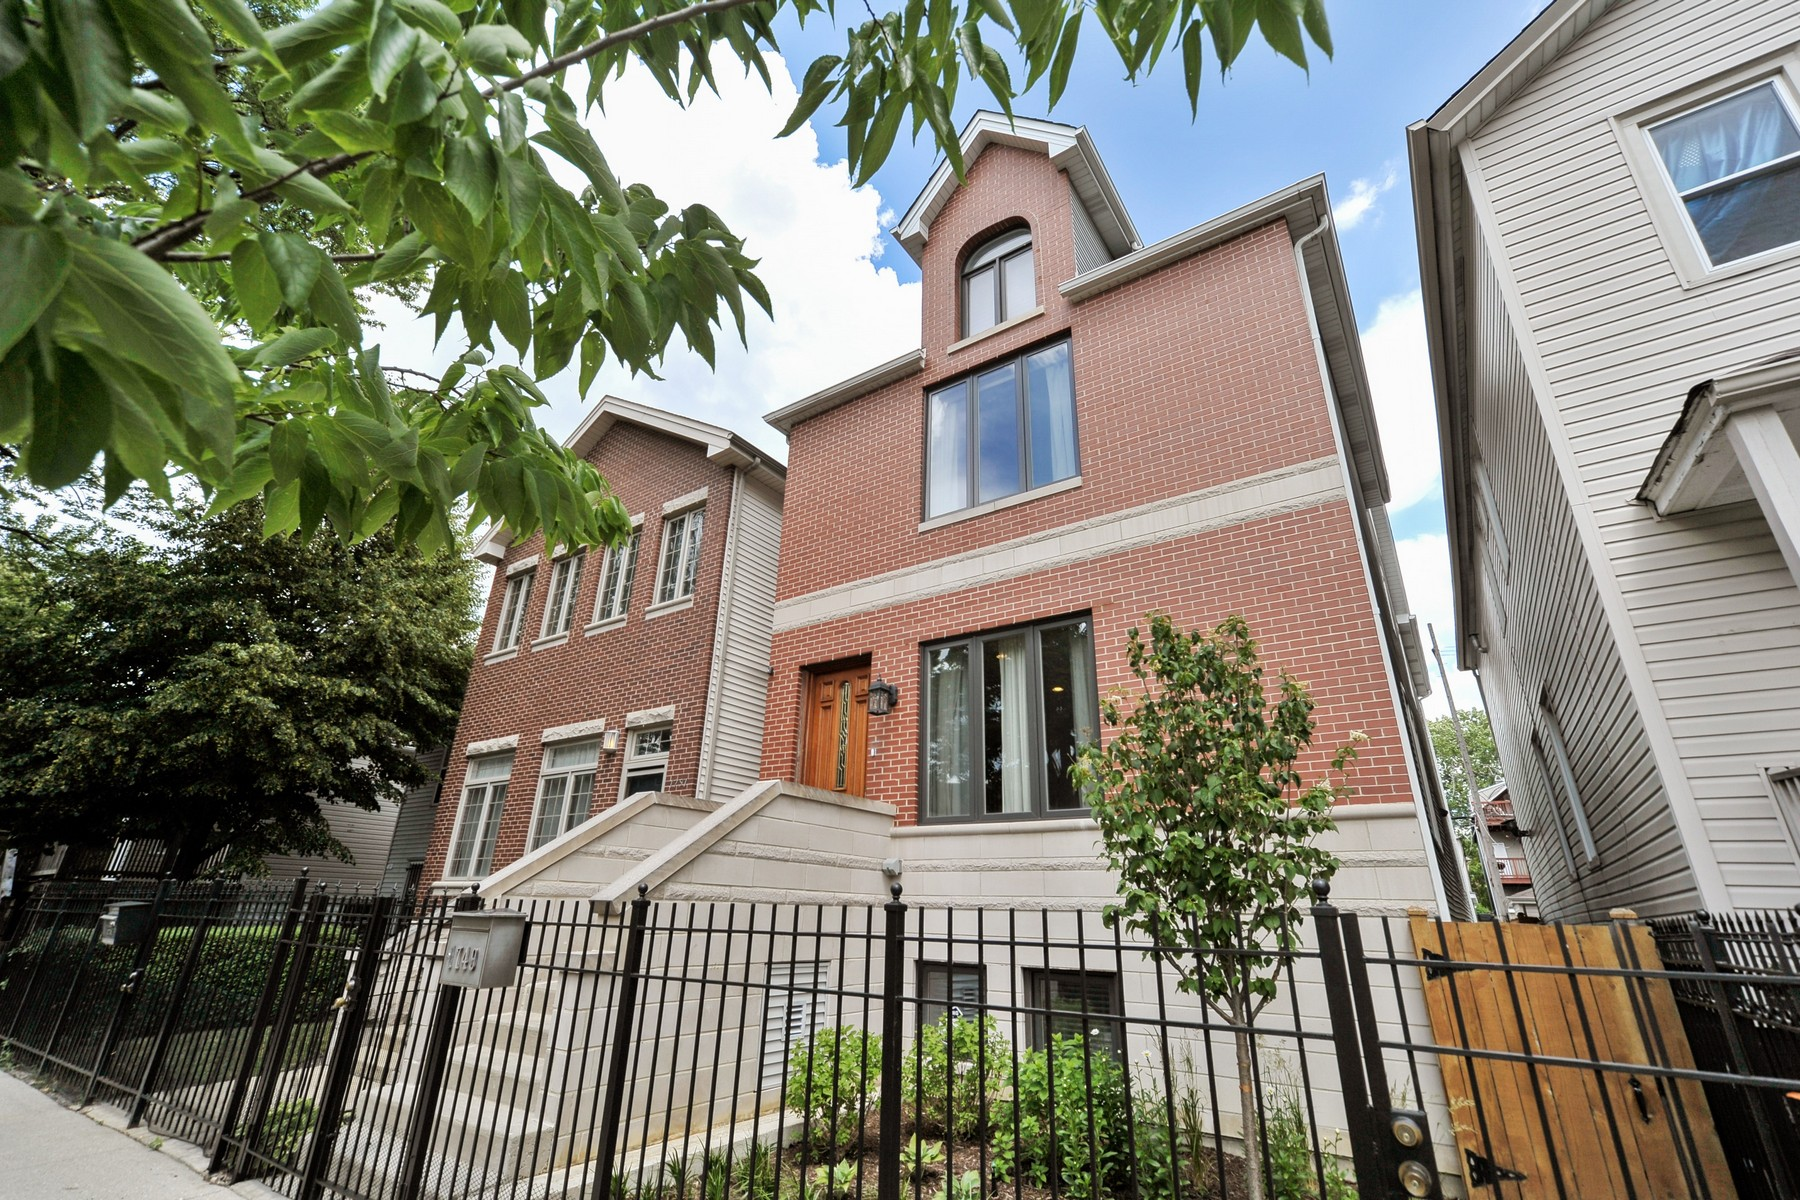 Single Family Home for Sale at Absolutely Beautiful Traditional Home 1749 N Talman Avenue Chicago, Illinois, 60647 United States